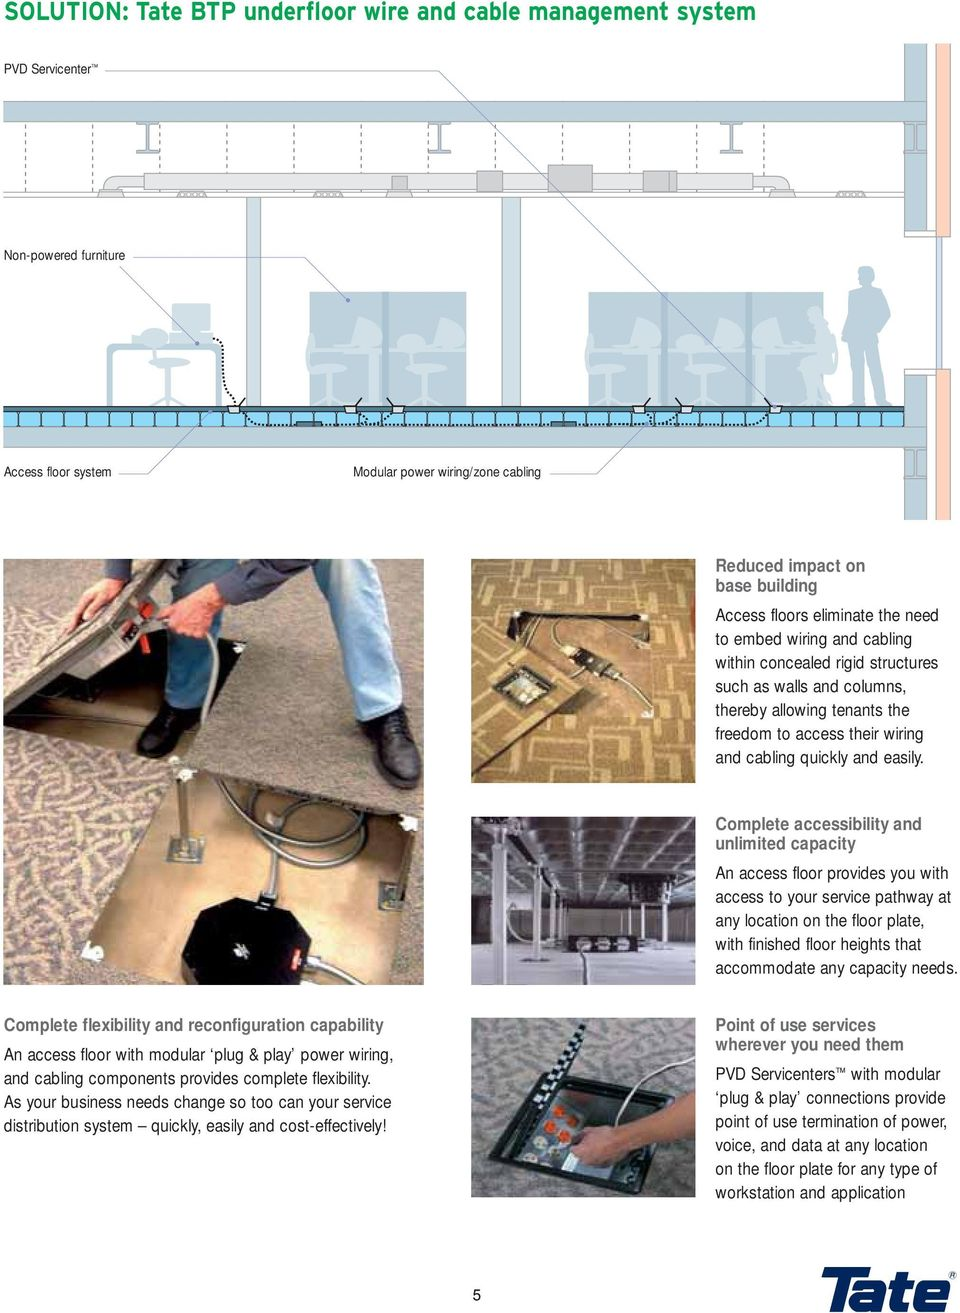 Tate s Wire & Cable Solution - PDF Free Download Wiring Zones In Walls on lights in walls, painting in walls, windows in walls, doors in walls, pipes in walls, heating in walls, insulation in walls, plumbing in walls, conduit in walls, plugs in walls, cable in walls, outlets in walls,